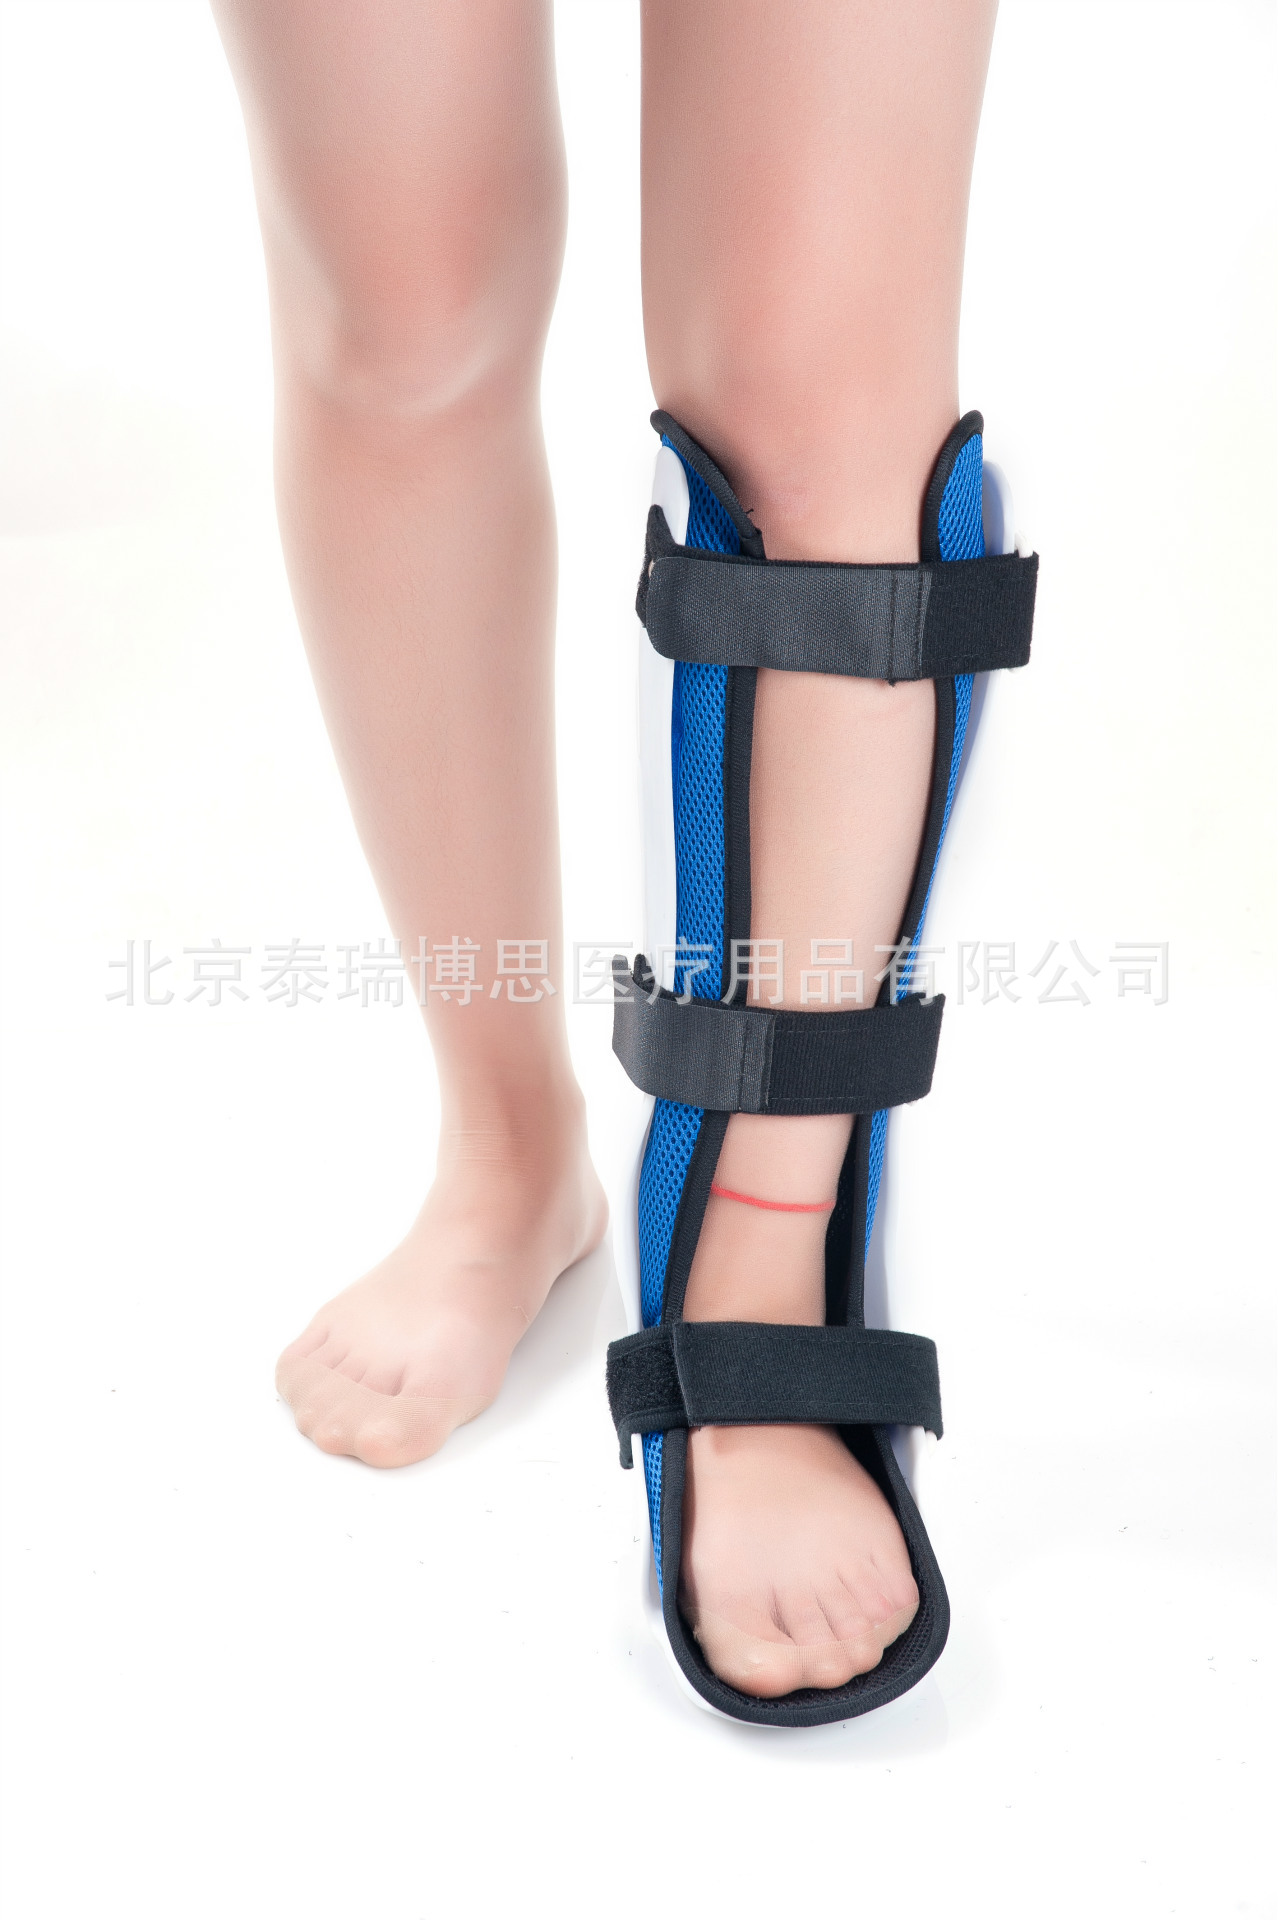 5d851405ae Department Of Orthopedics, Medical Care Of Lower Extremity Foot Support  Legs Leg Brace Bracket Resin Orthotics Foot Drop -in Braces & Supports from  Beauty ...